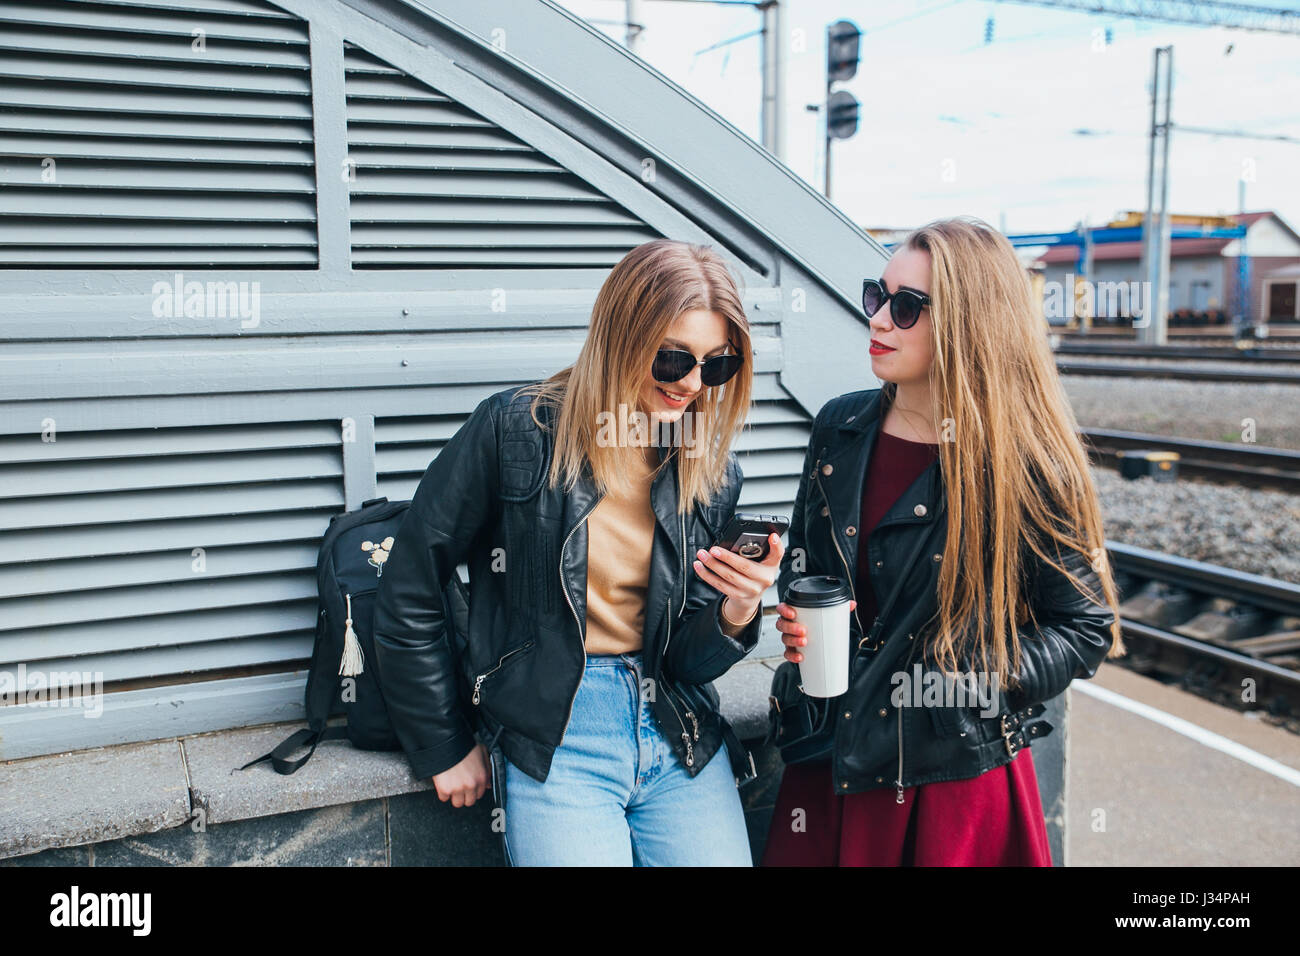 Two Women Talking in the City.Outdoor lifestyle portrait of two best friends hipster girls wearing stylish Leather Stock Photo